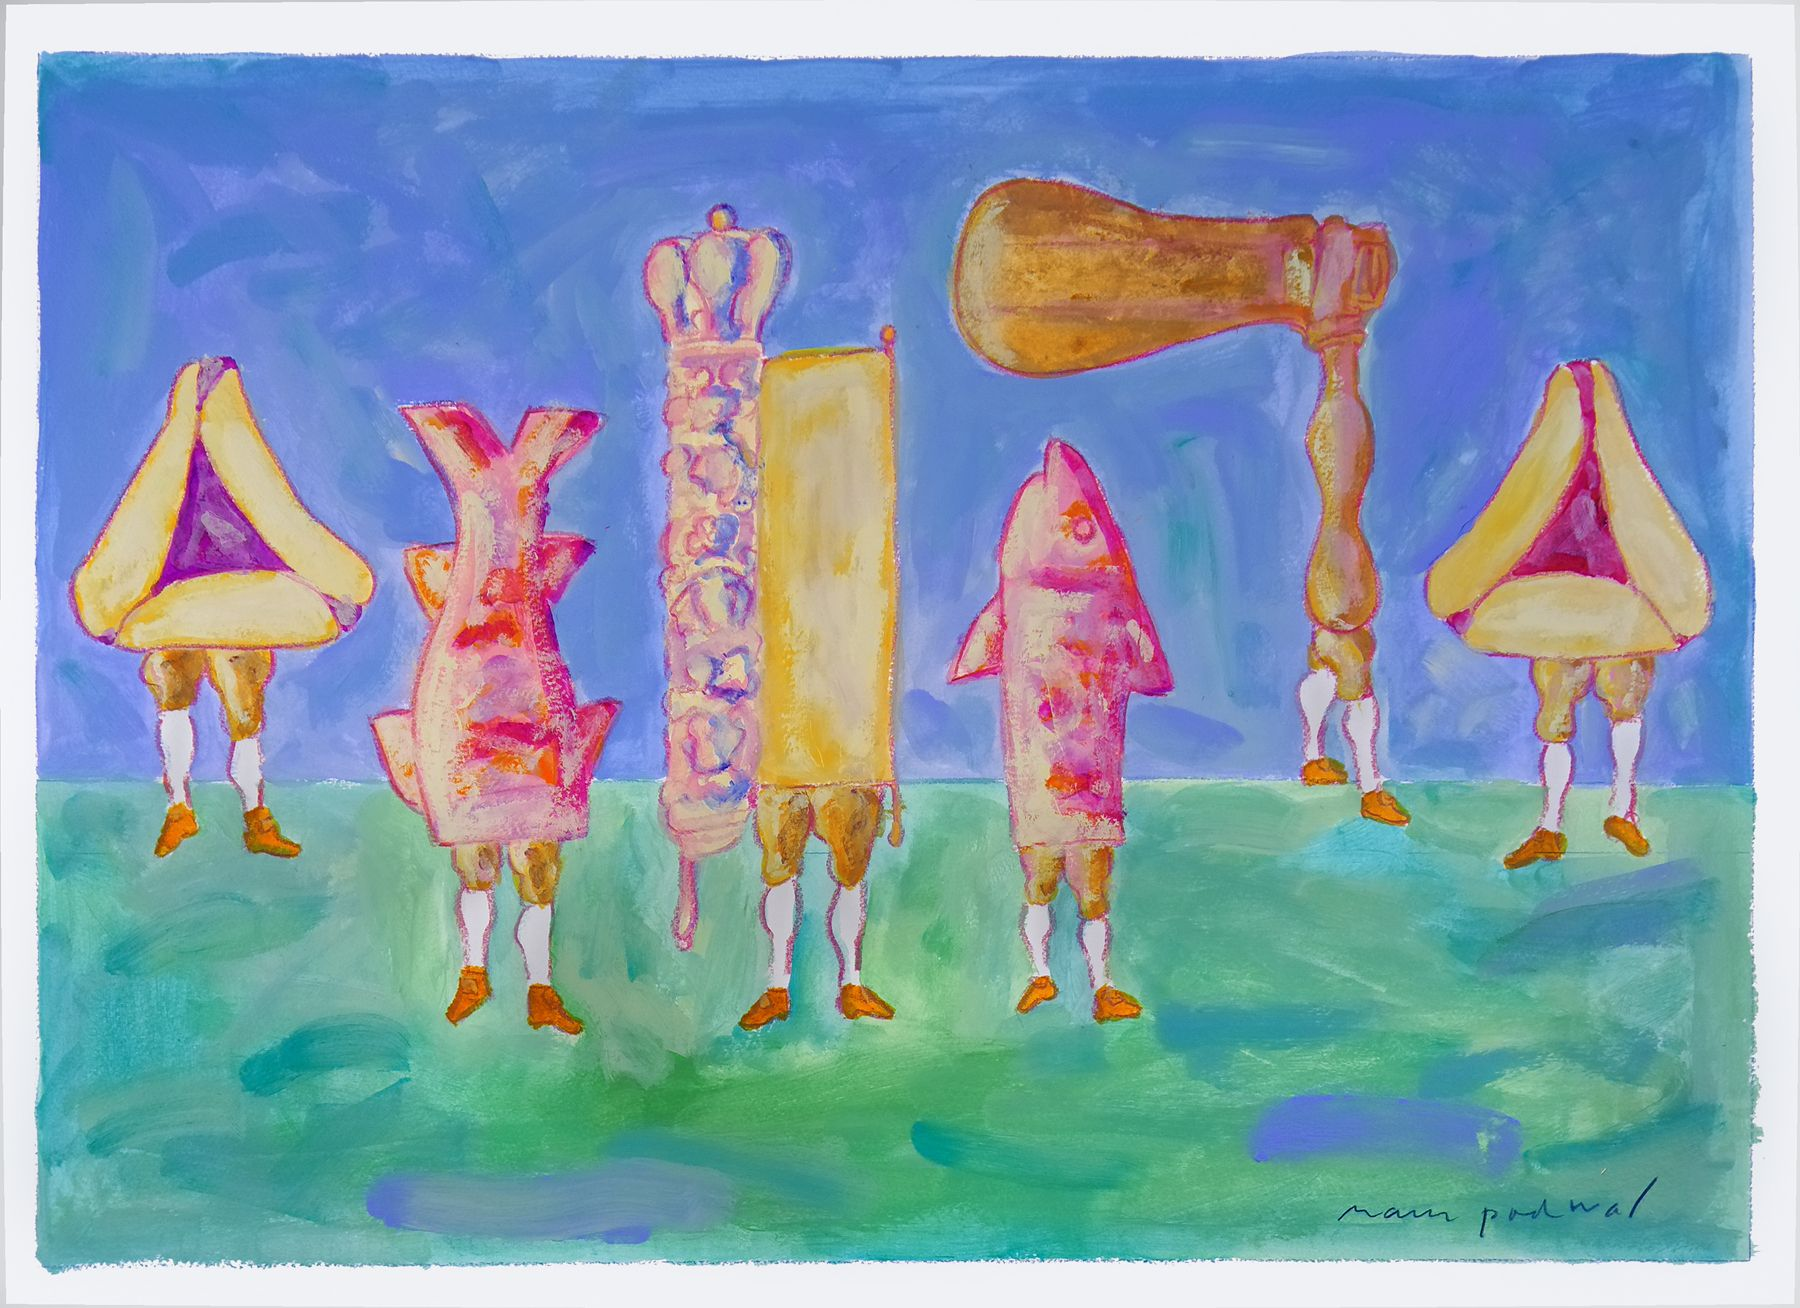 Mark Podwal, Six Purim Costumes (SOLD), 2007, acrylic, gouache, colored pencil on paper, 22 1/8 x 29 7/8 inches